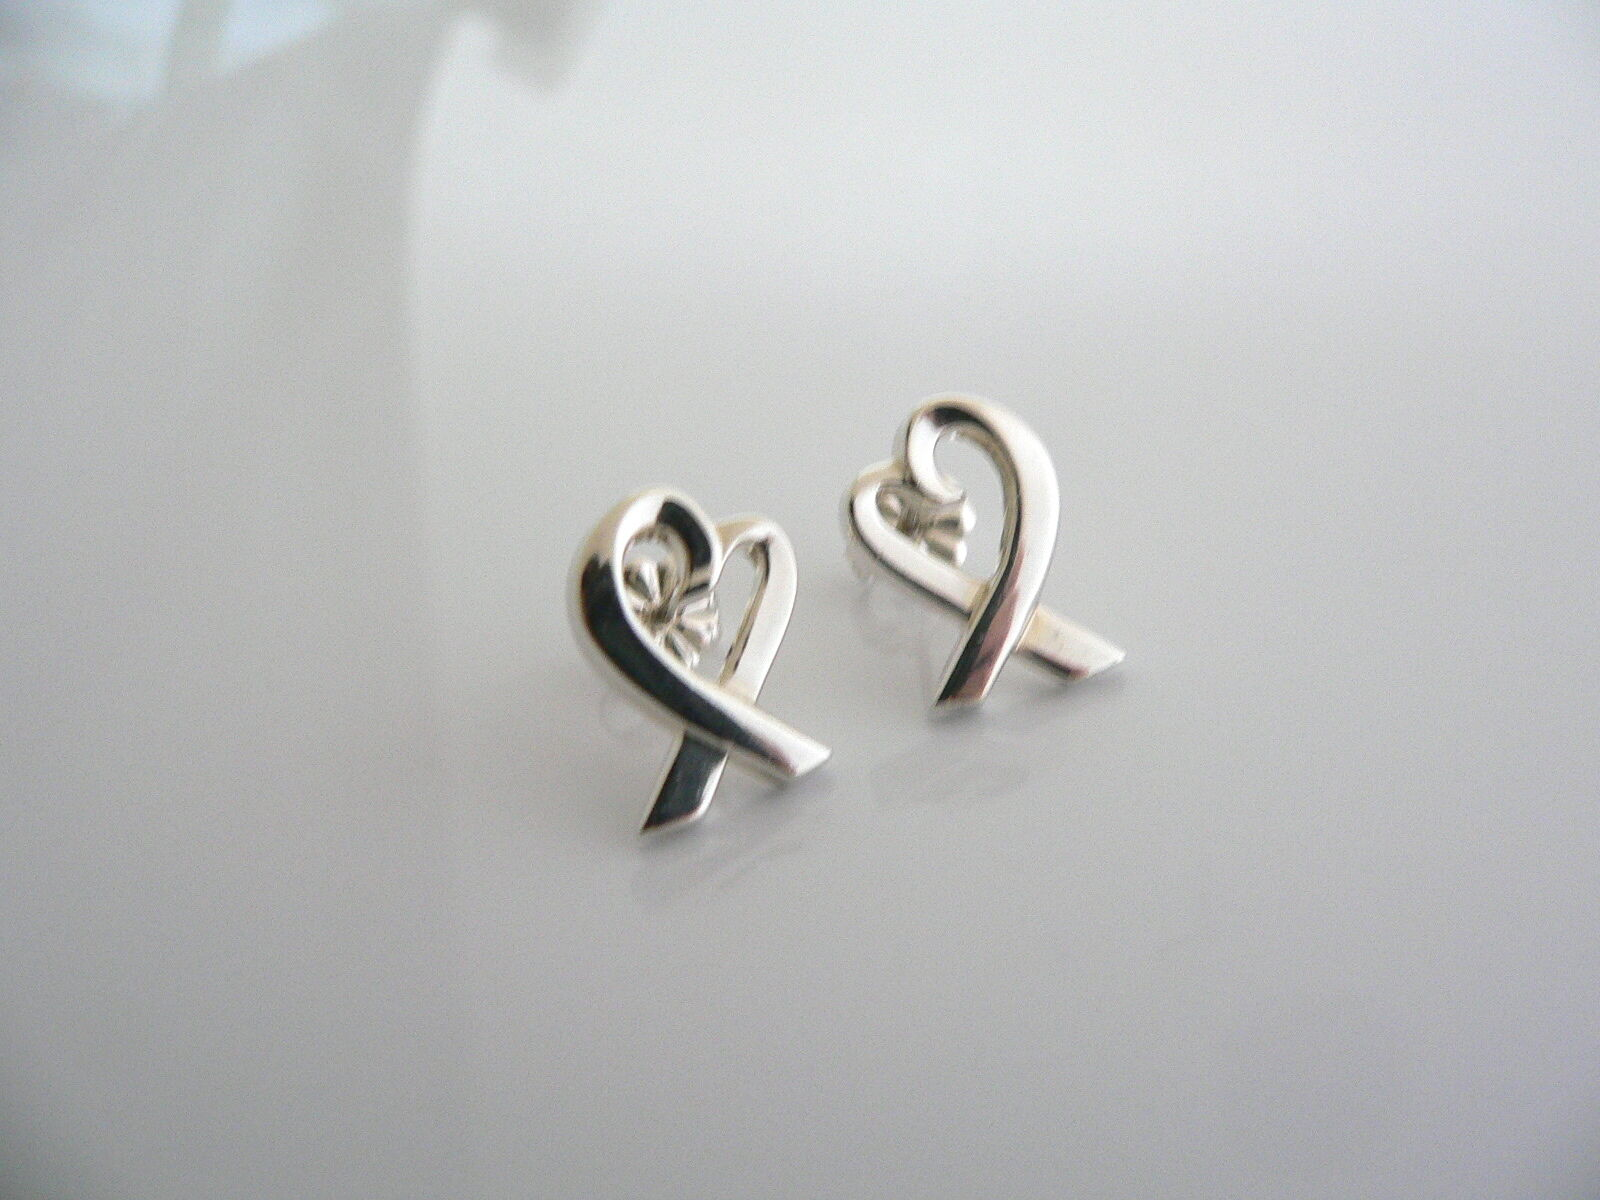 Tiffany & Co Silver Loving Heart Earrings Studs Picasso Gift Statement Classic